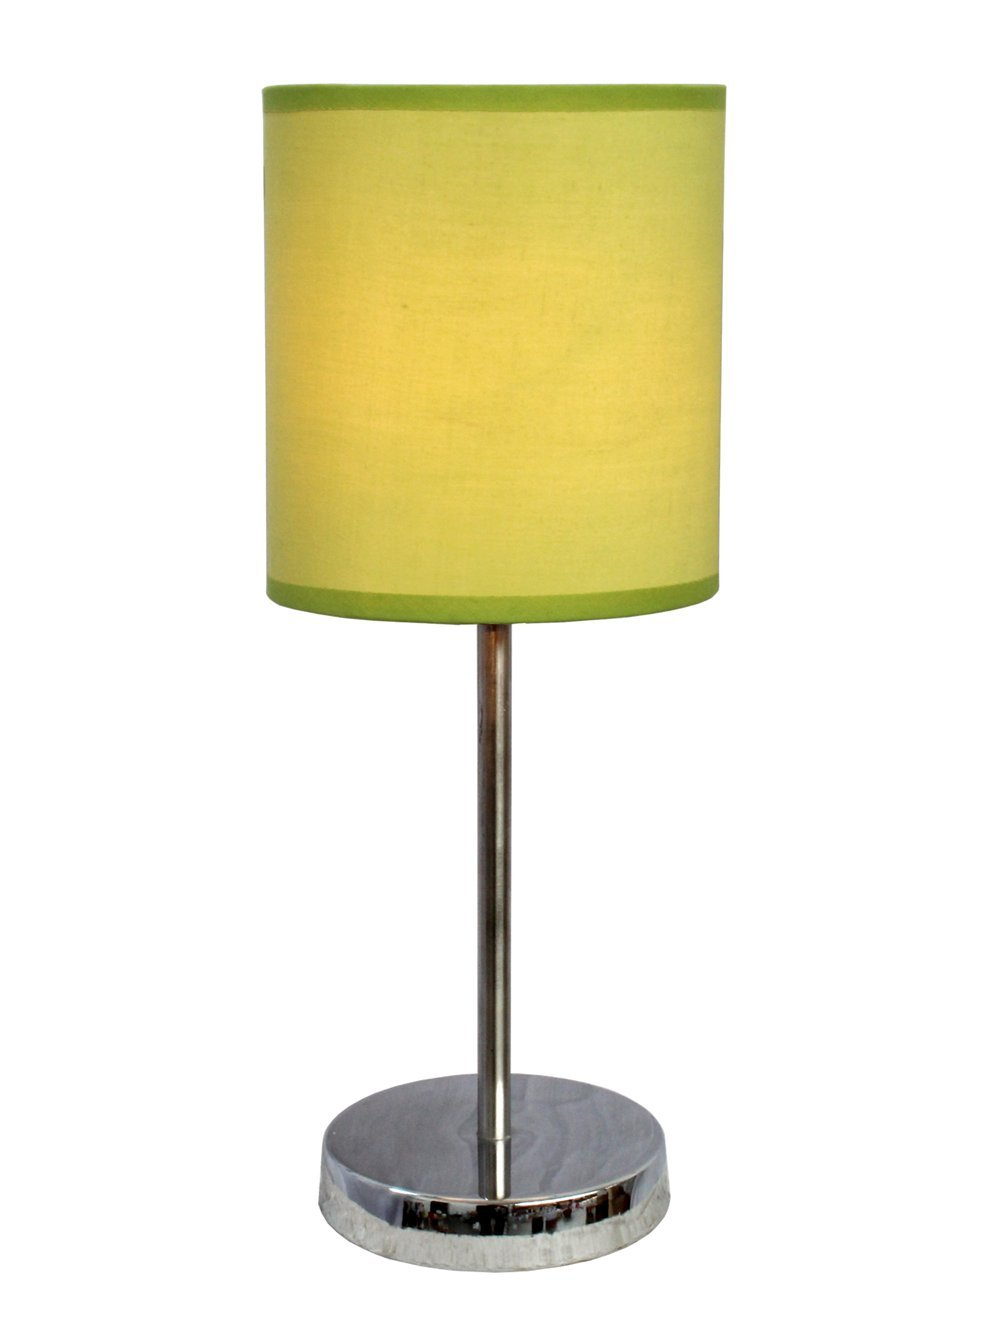 Simple Designs Home LT2007-GRN Simple Designs Chrome Mini Basic Table Lamp with Fabric Shade, 5.51'' x 5.51'' x 11.81'', Green